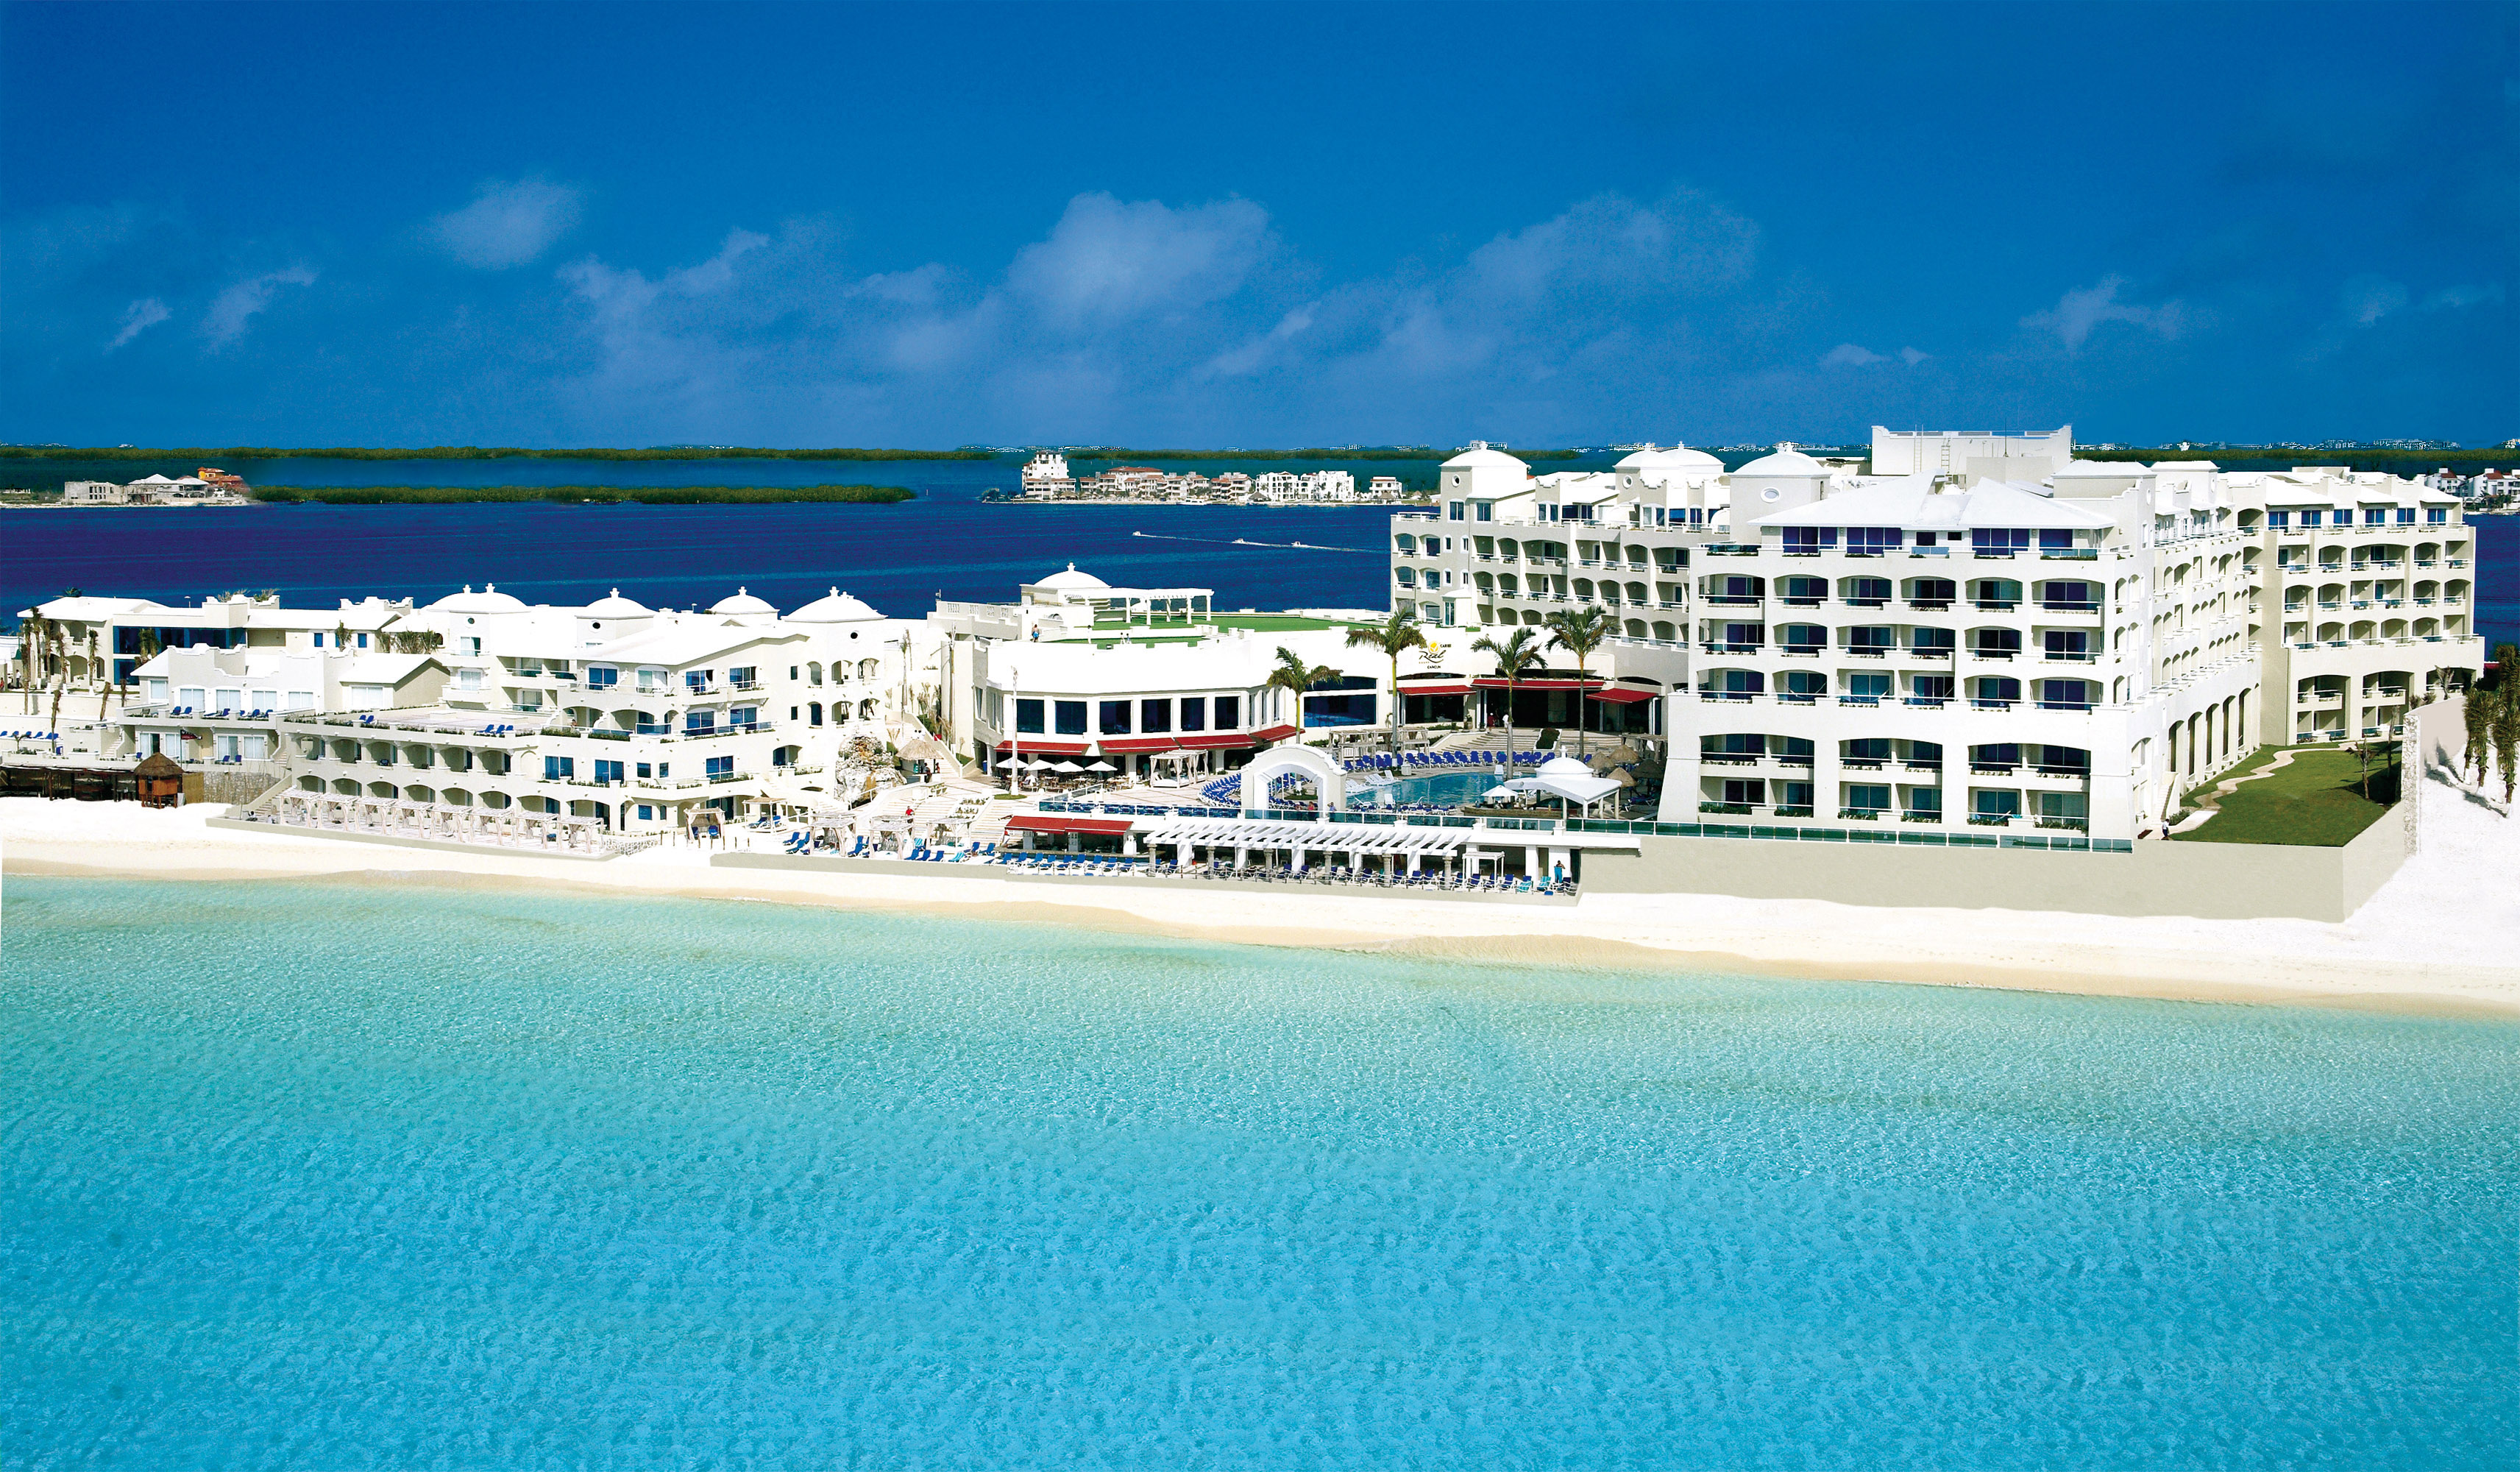 Royal Cancun And Gran Caribe Real Resort Spa In Mexico Affiliated